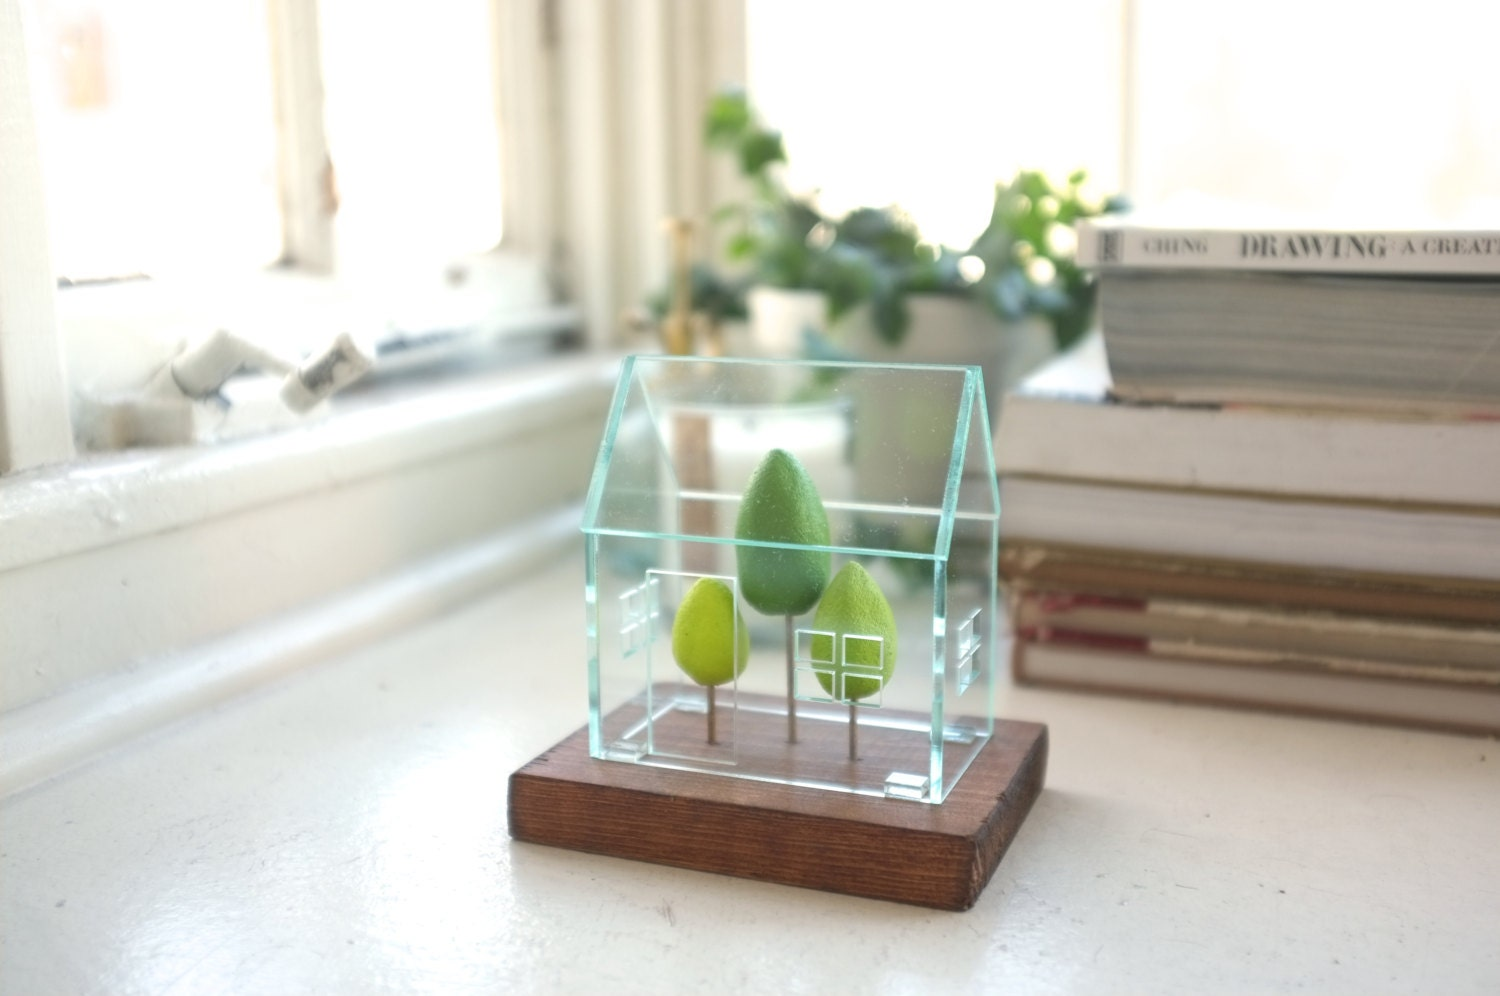 Miniature greenhouse structure small acrylics architecture around green trees glass house look solarium